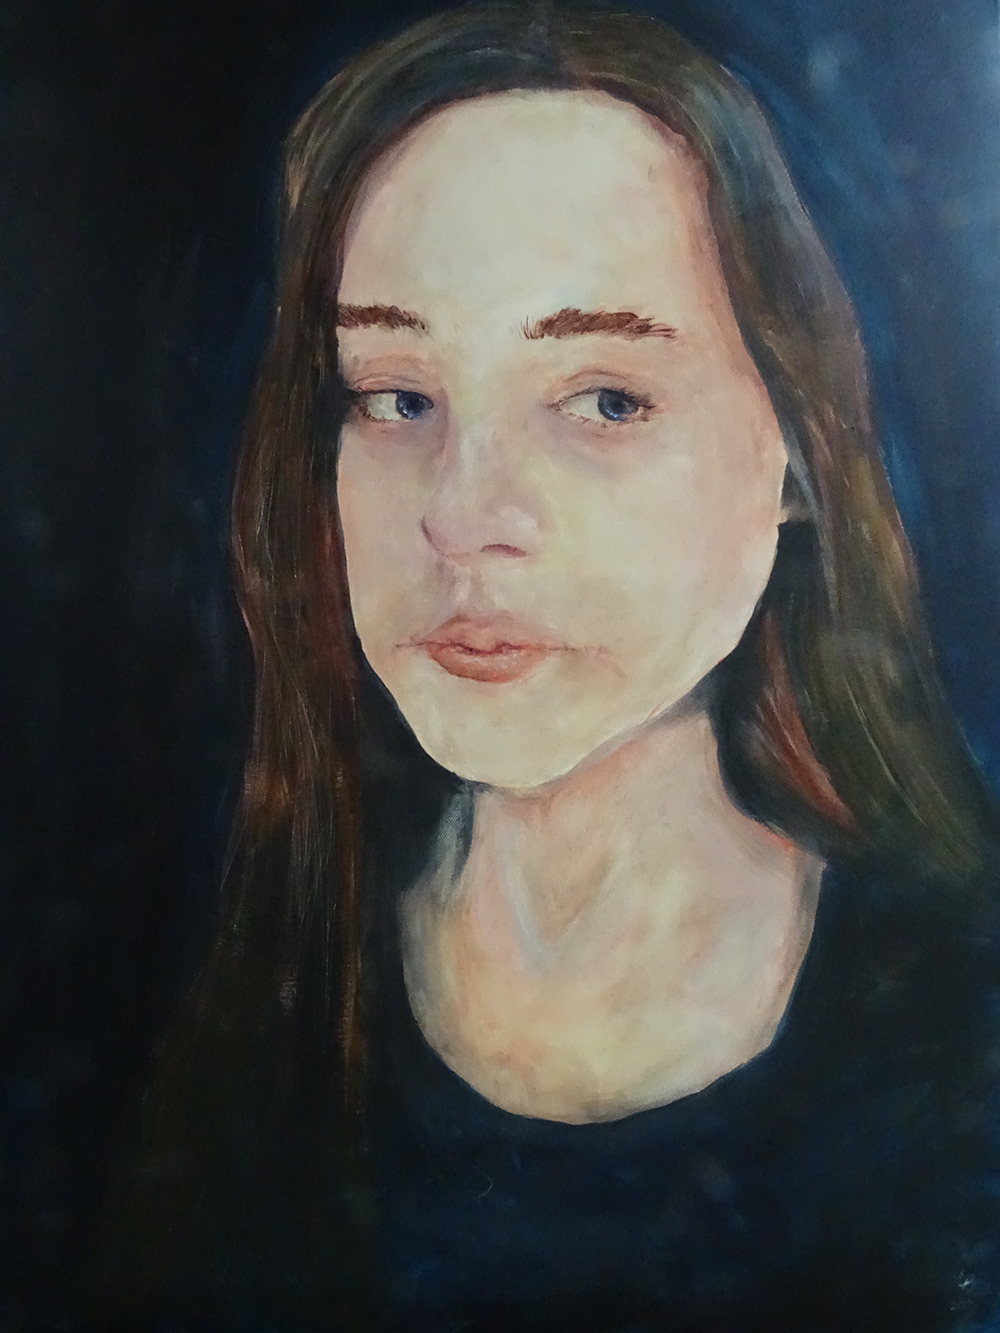 acrylic self-portrait